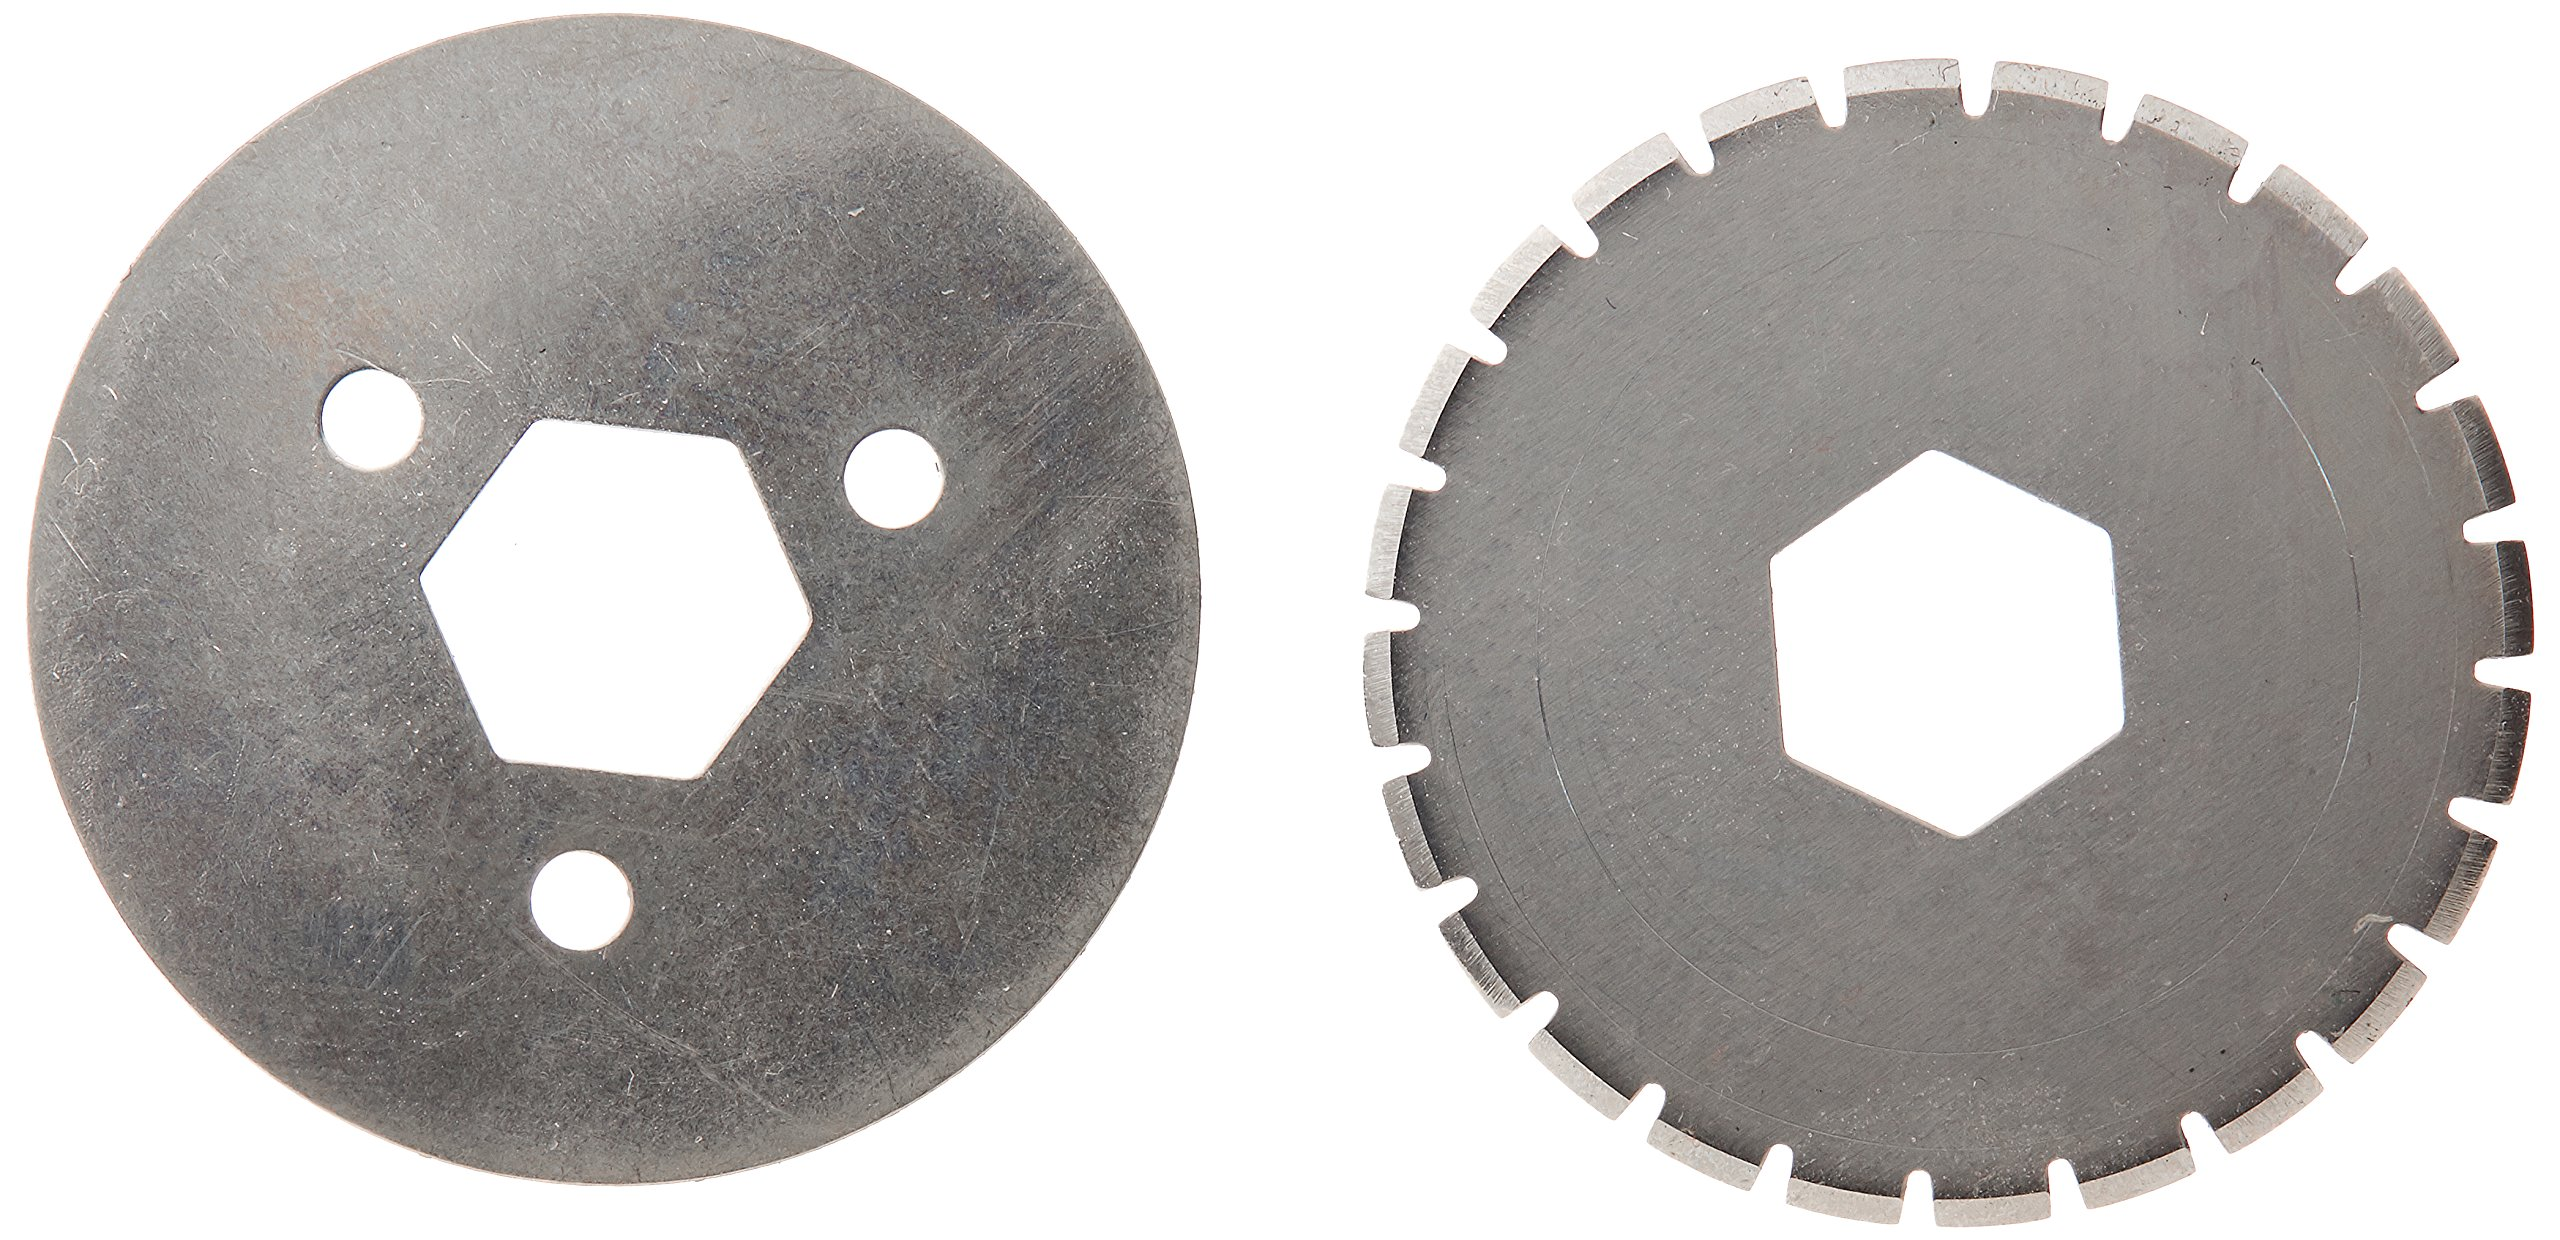 Carl K-M31 Replacement Scoring/Perforating Set for The DC-210/220/238/2500 by CARL BRANDS